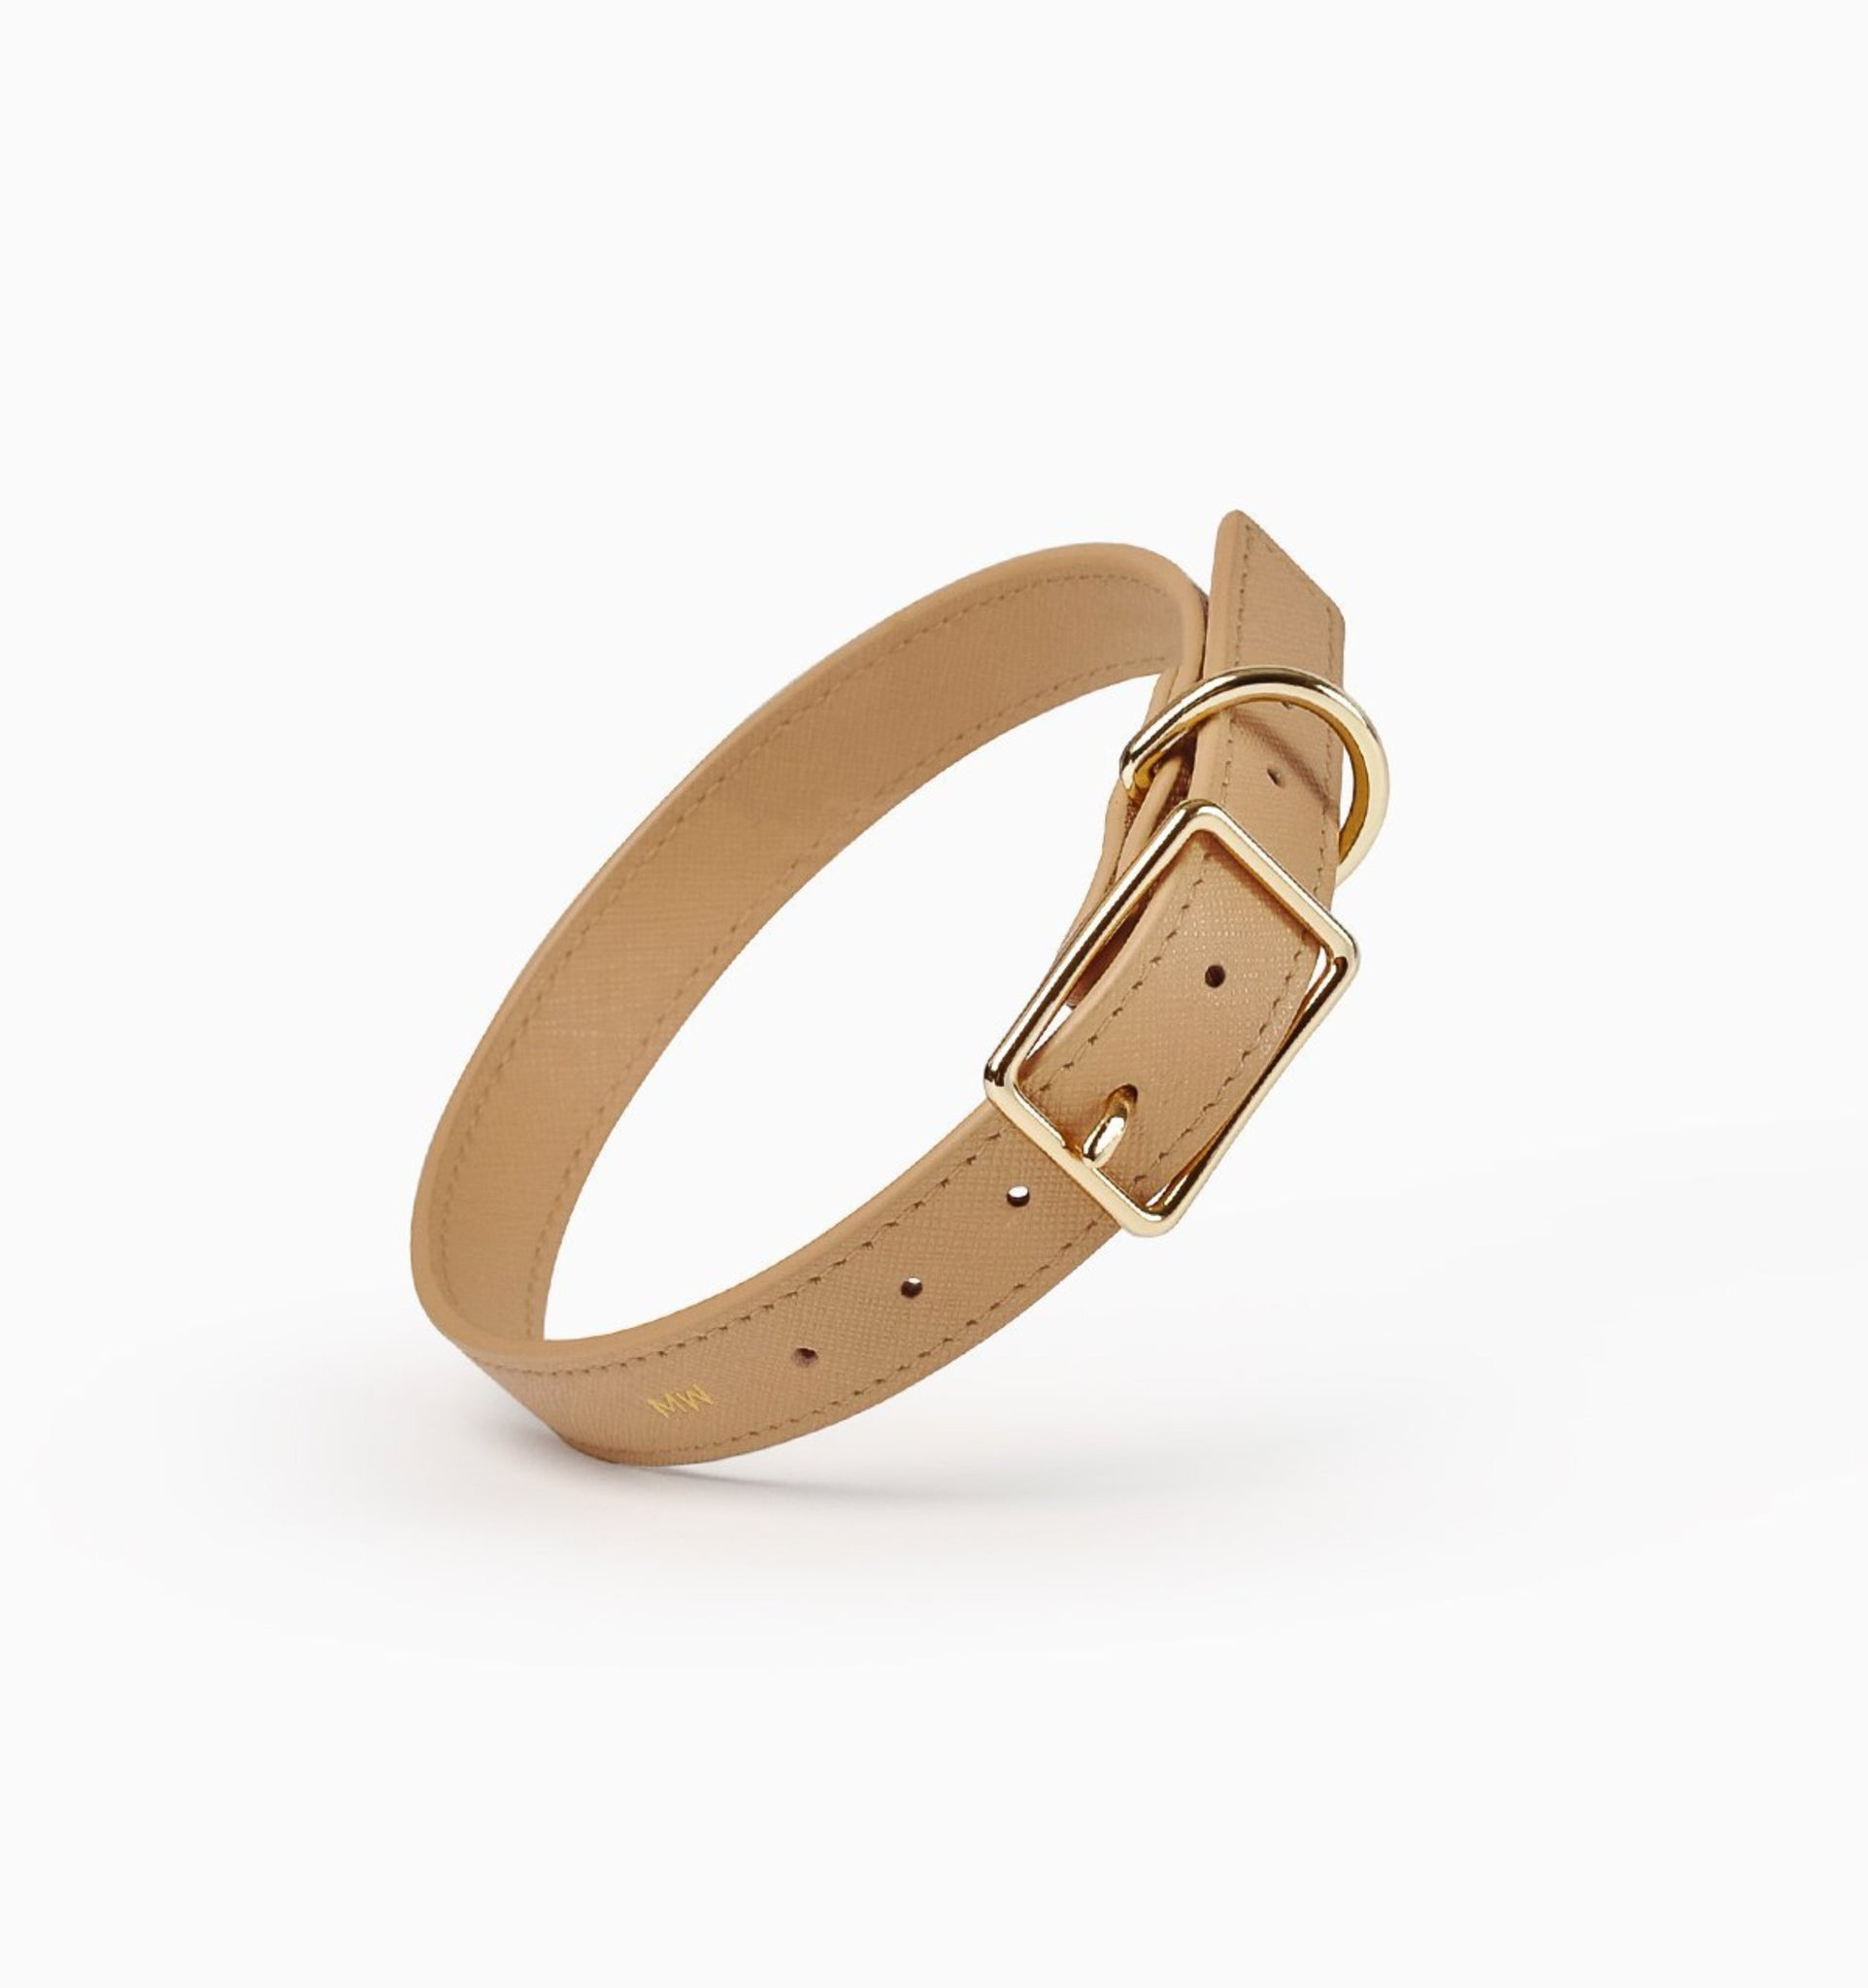 PUP LEATHER COLLAR // TAN